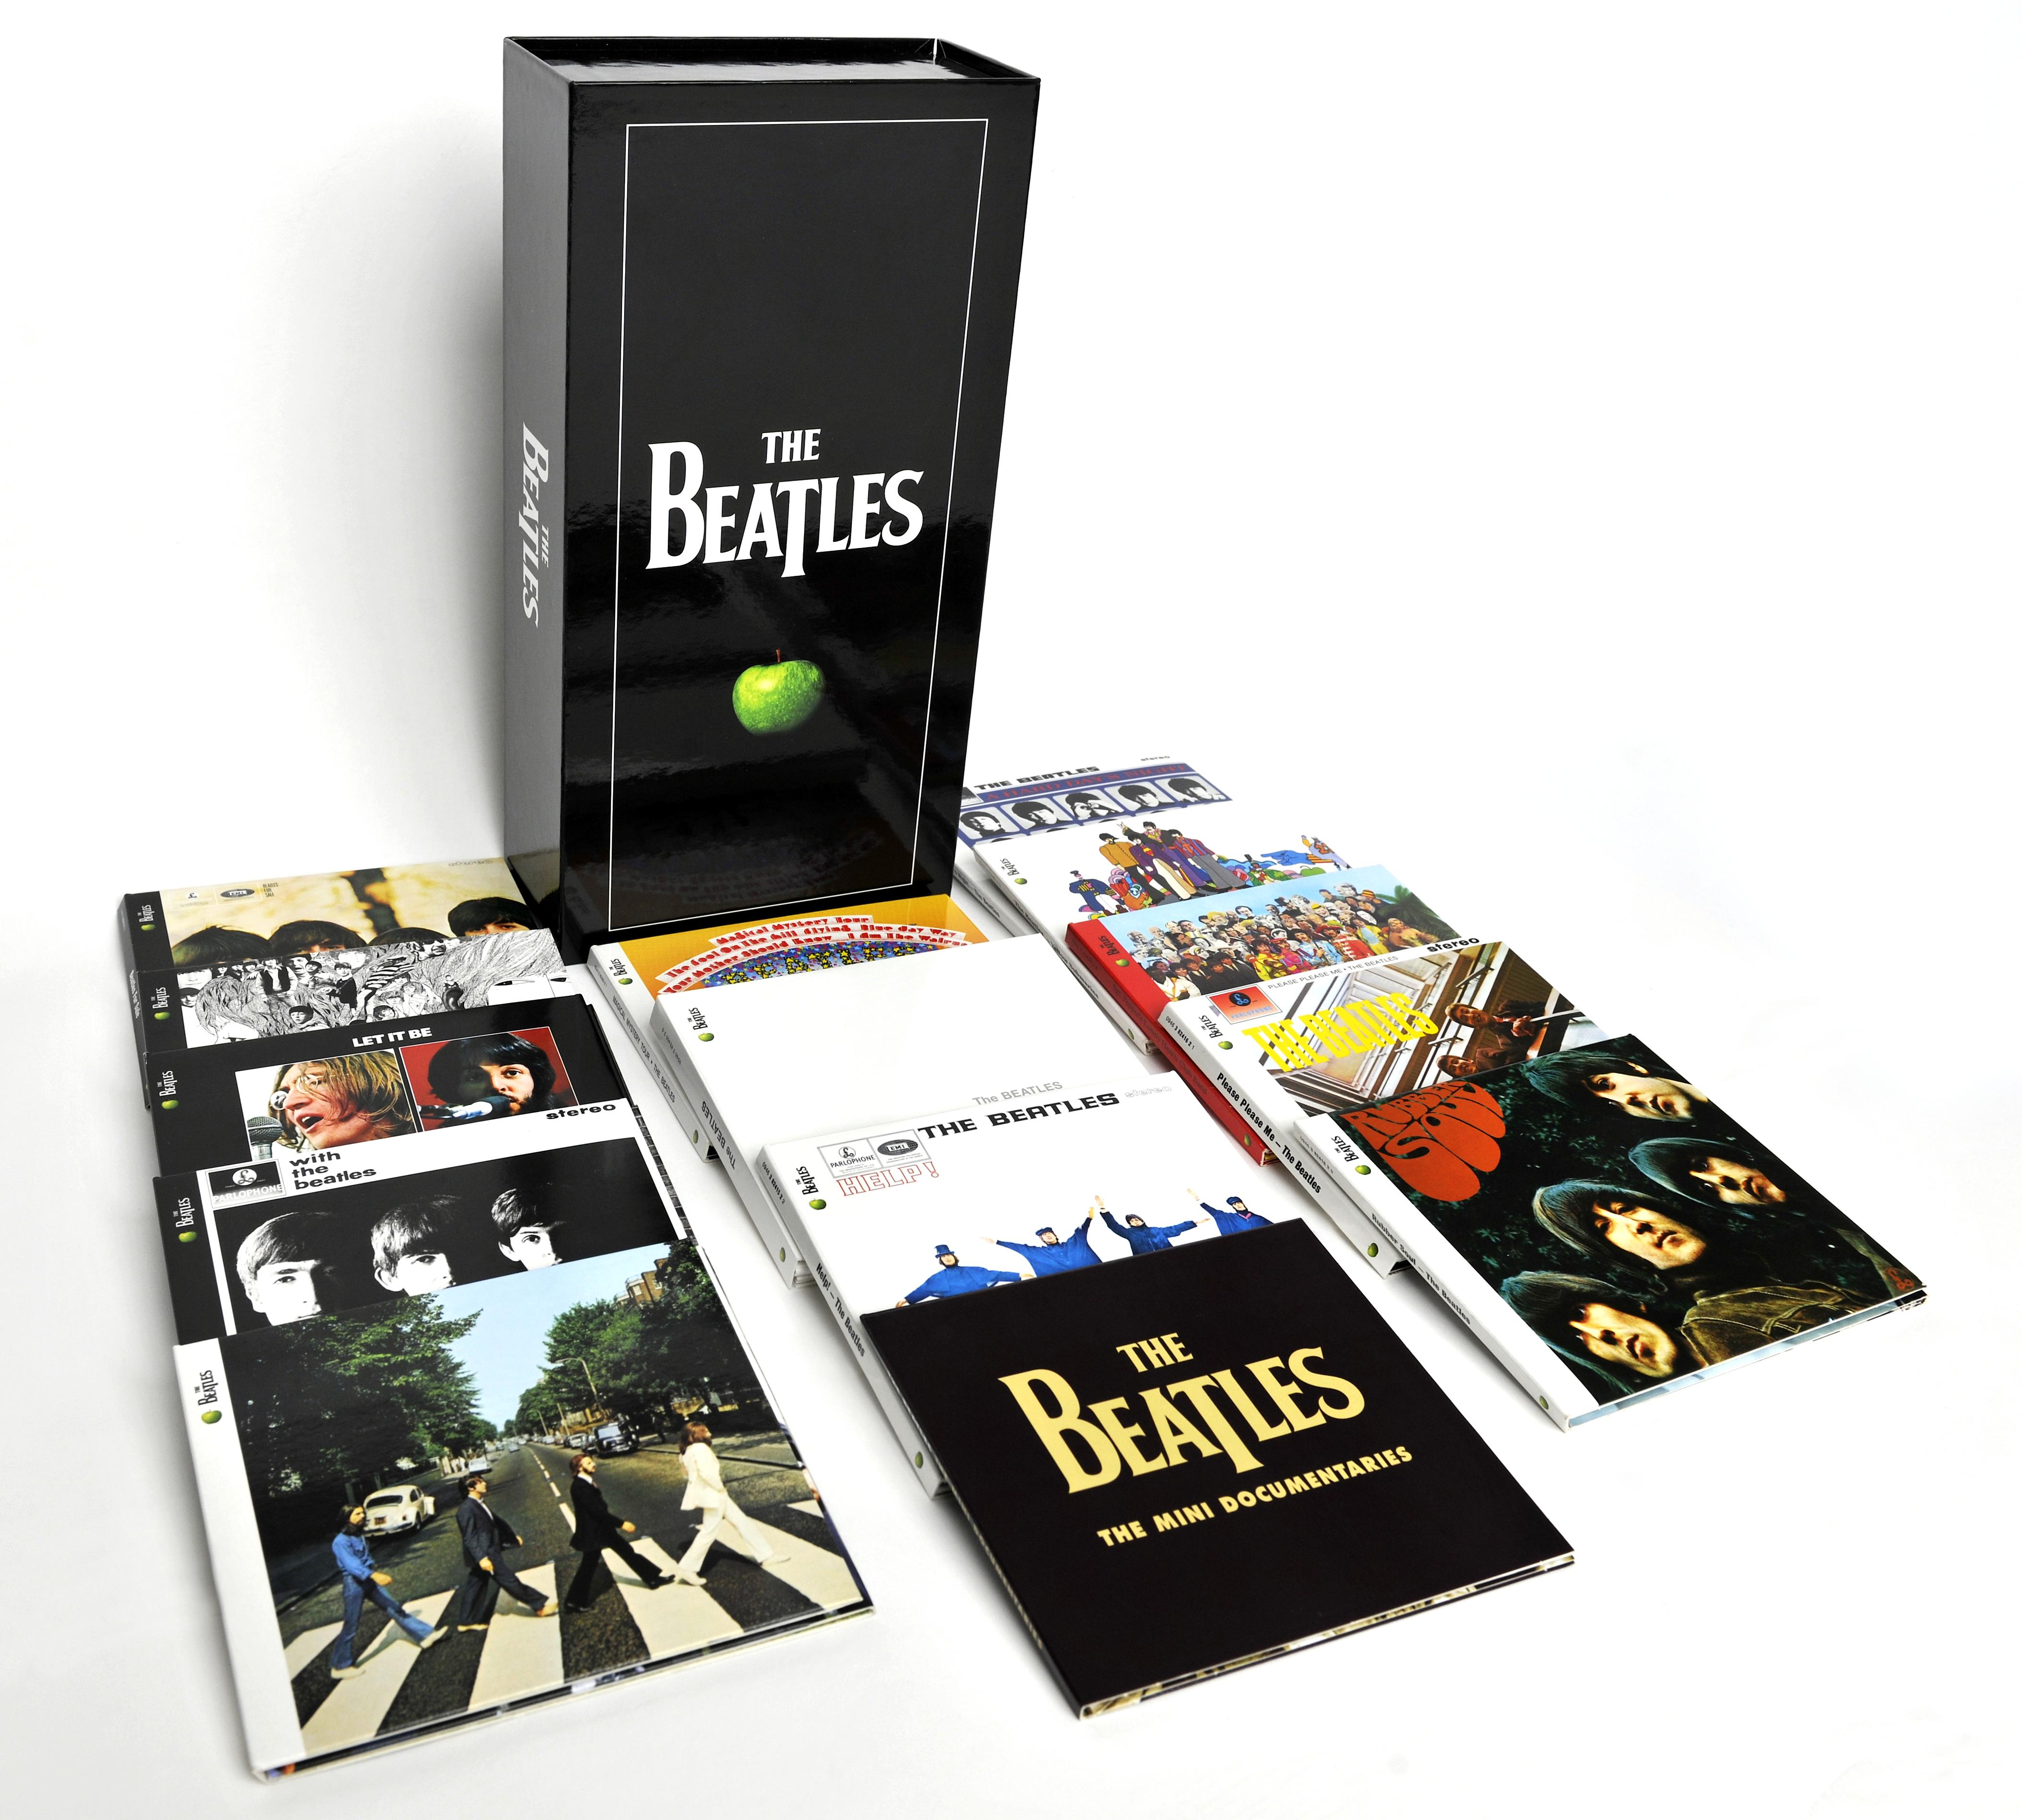 The Beatles Stereo Box Set (2009)